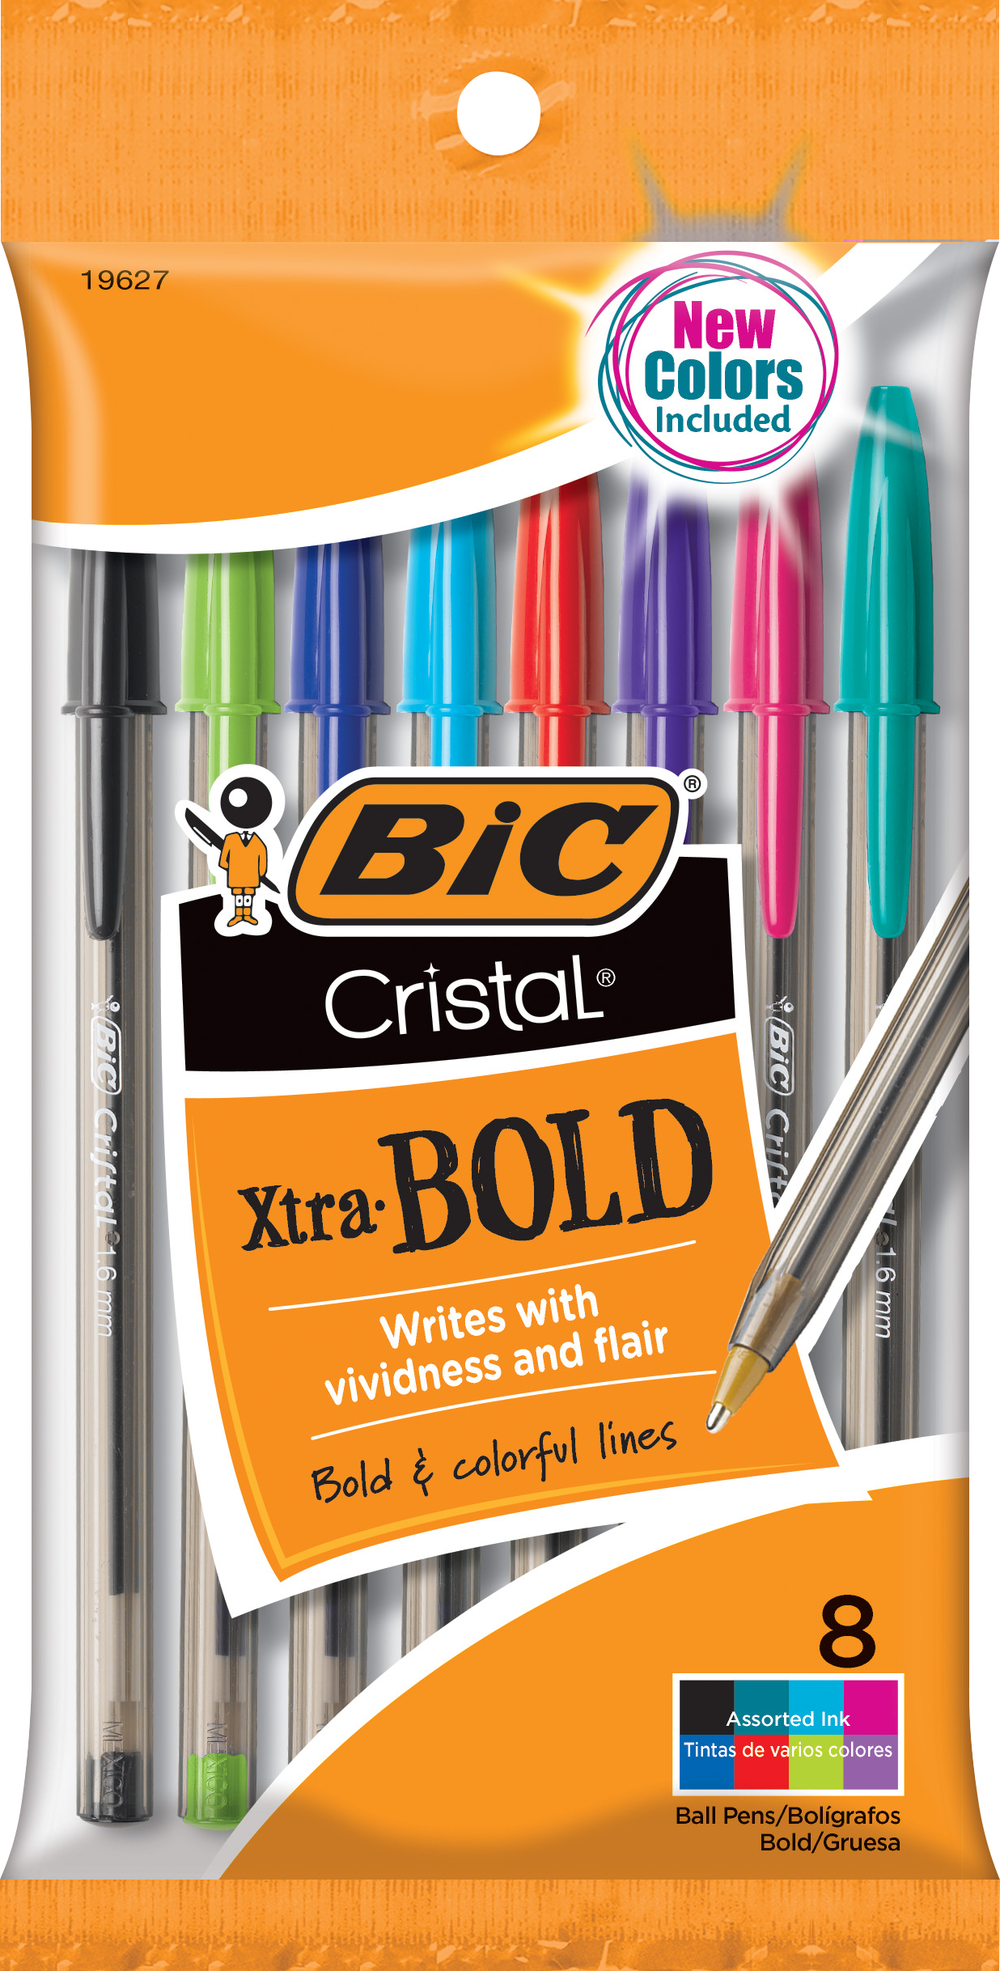 Cristal Xtra Bold Ballpoint Pen 1.6mm Fashion 8 Pk BP